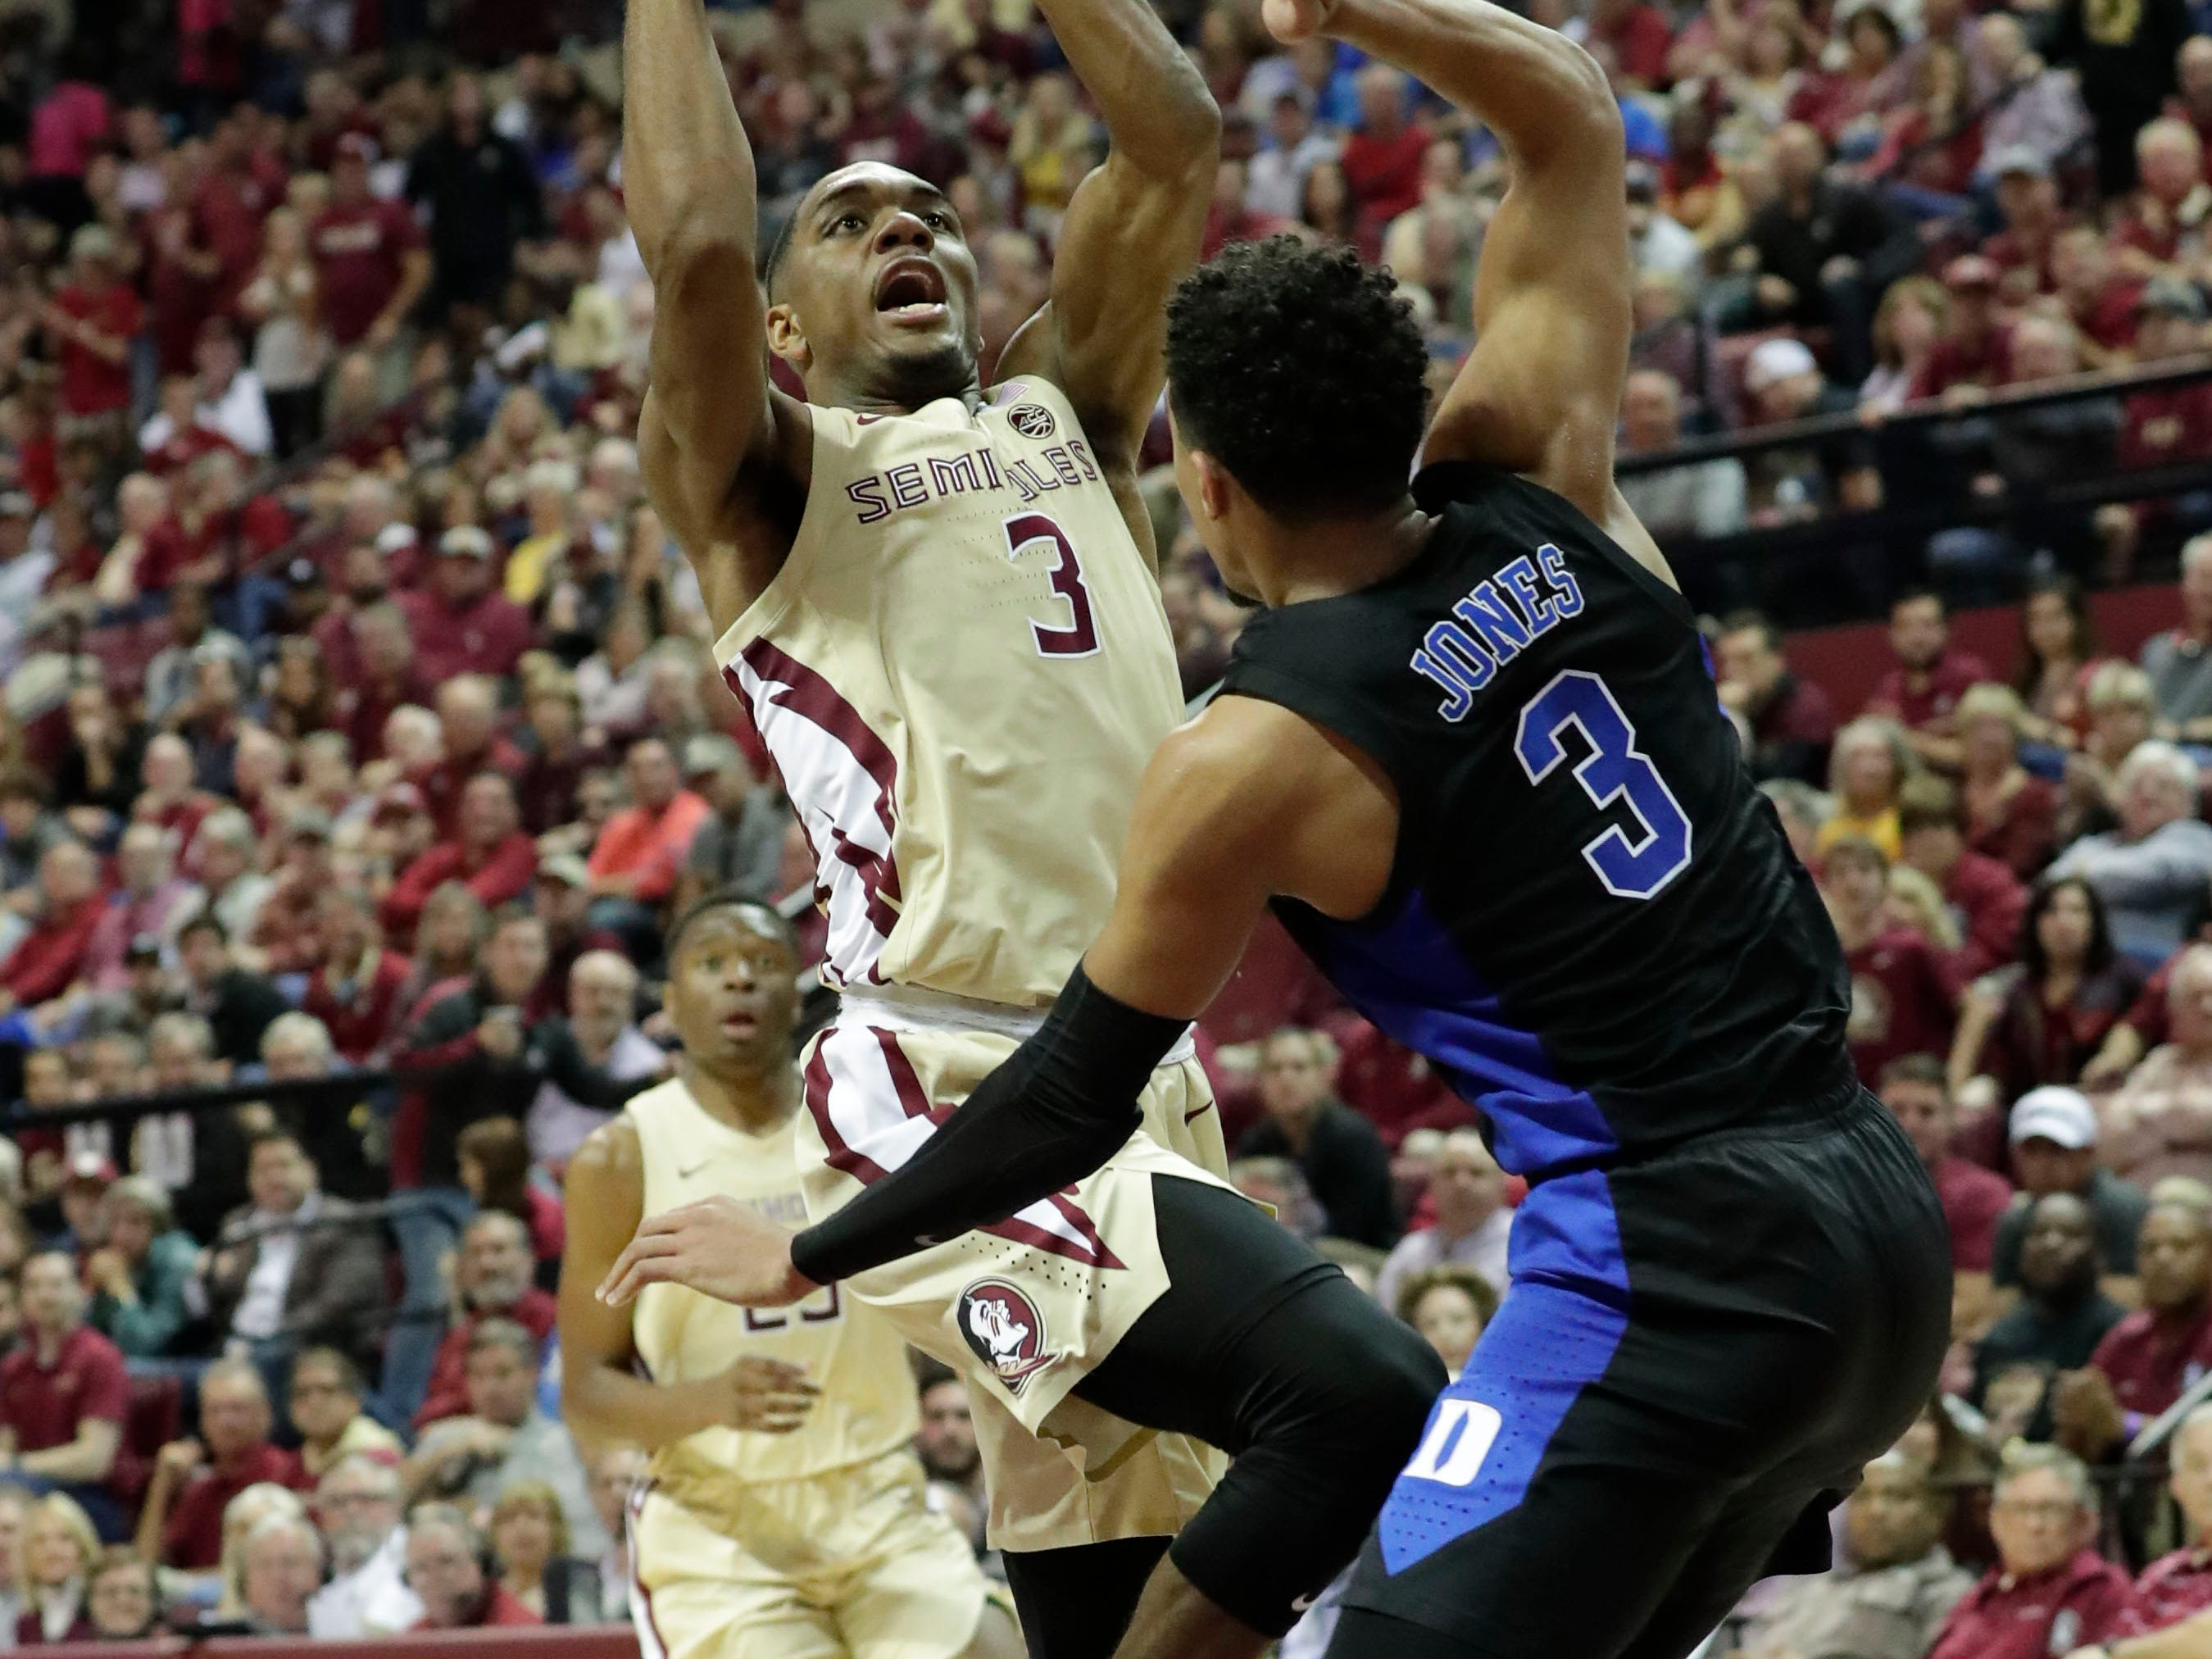 Florida State Seminoles guard Trent Forrest (3) shoots from inside the paint over Duke Blue Devils guard Tre Jones (3). Ranked 13 in the ACC, the Florida State Seminoles host the number 1 team, the Duke Blue Devils, at the Tucker Civic Center, Saturday, Jan. 12, 2019.